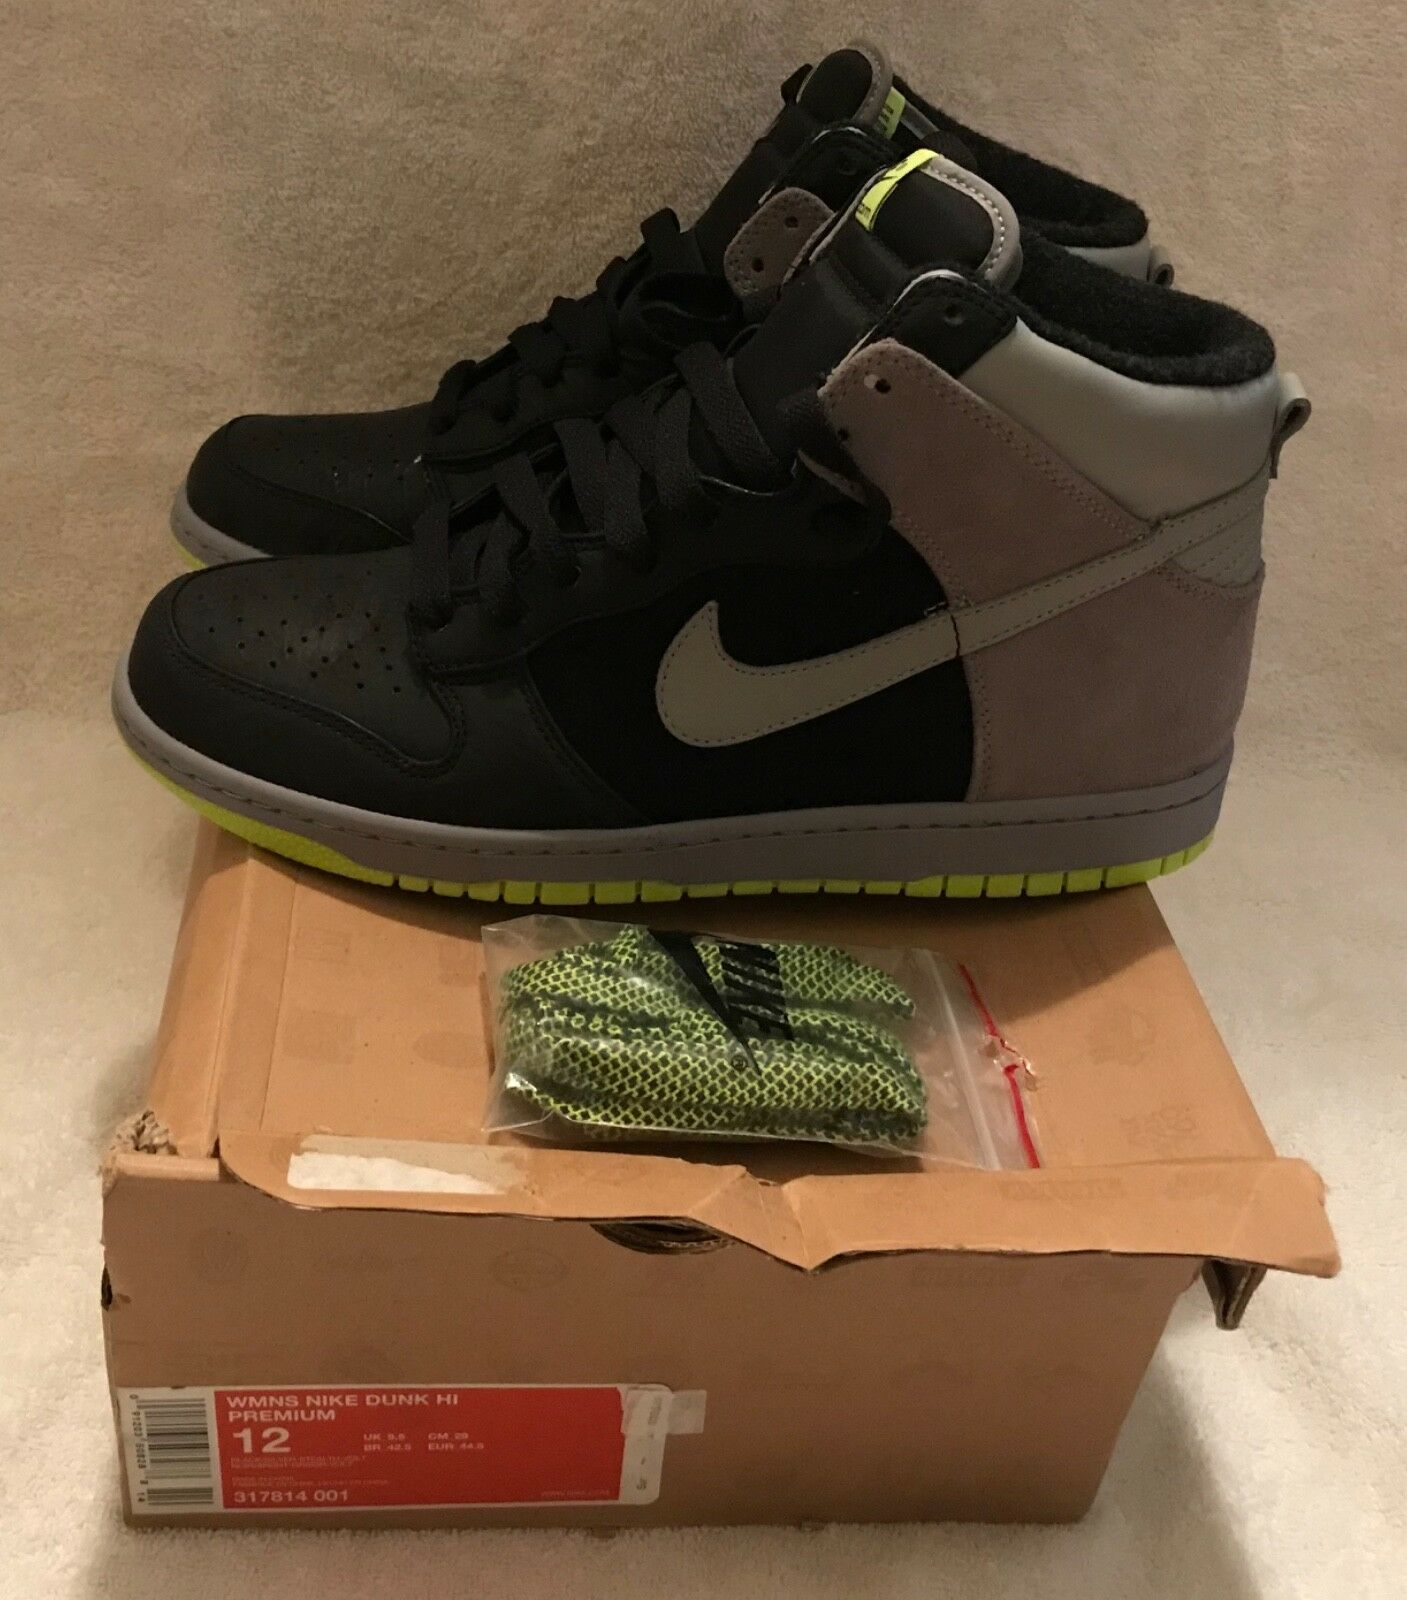 NIKE Women's Dunk Hi Premium Limited Edition Size Size Size US 12 New w Box & 2 sets laces aa1b34